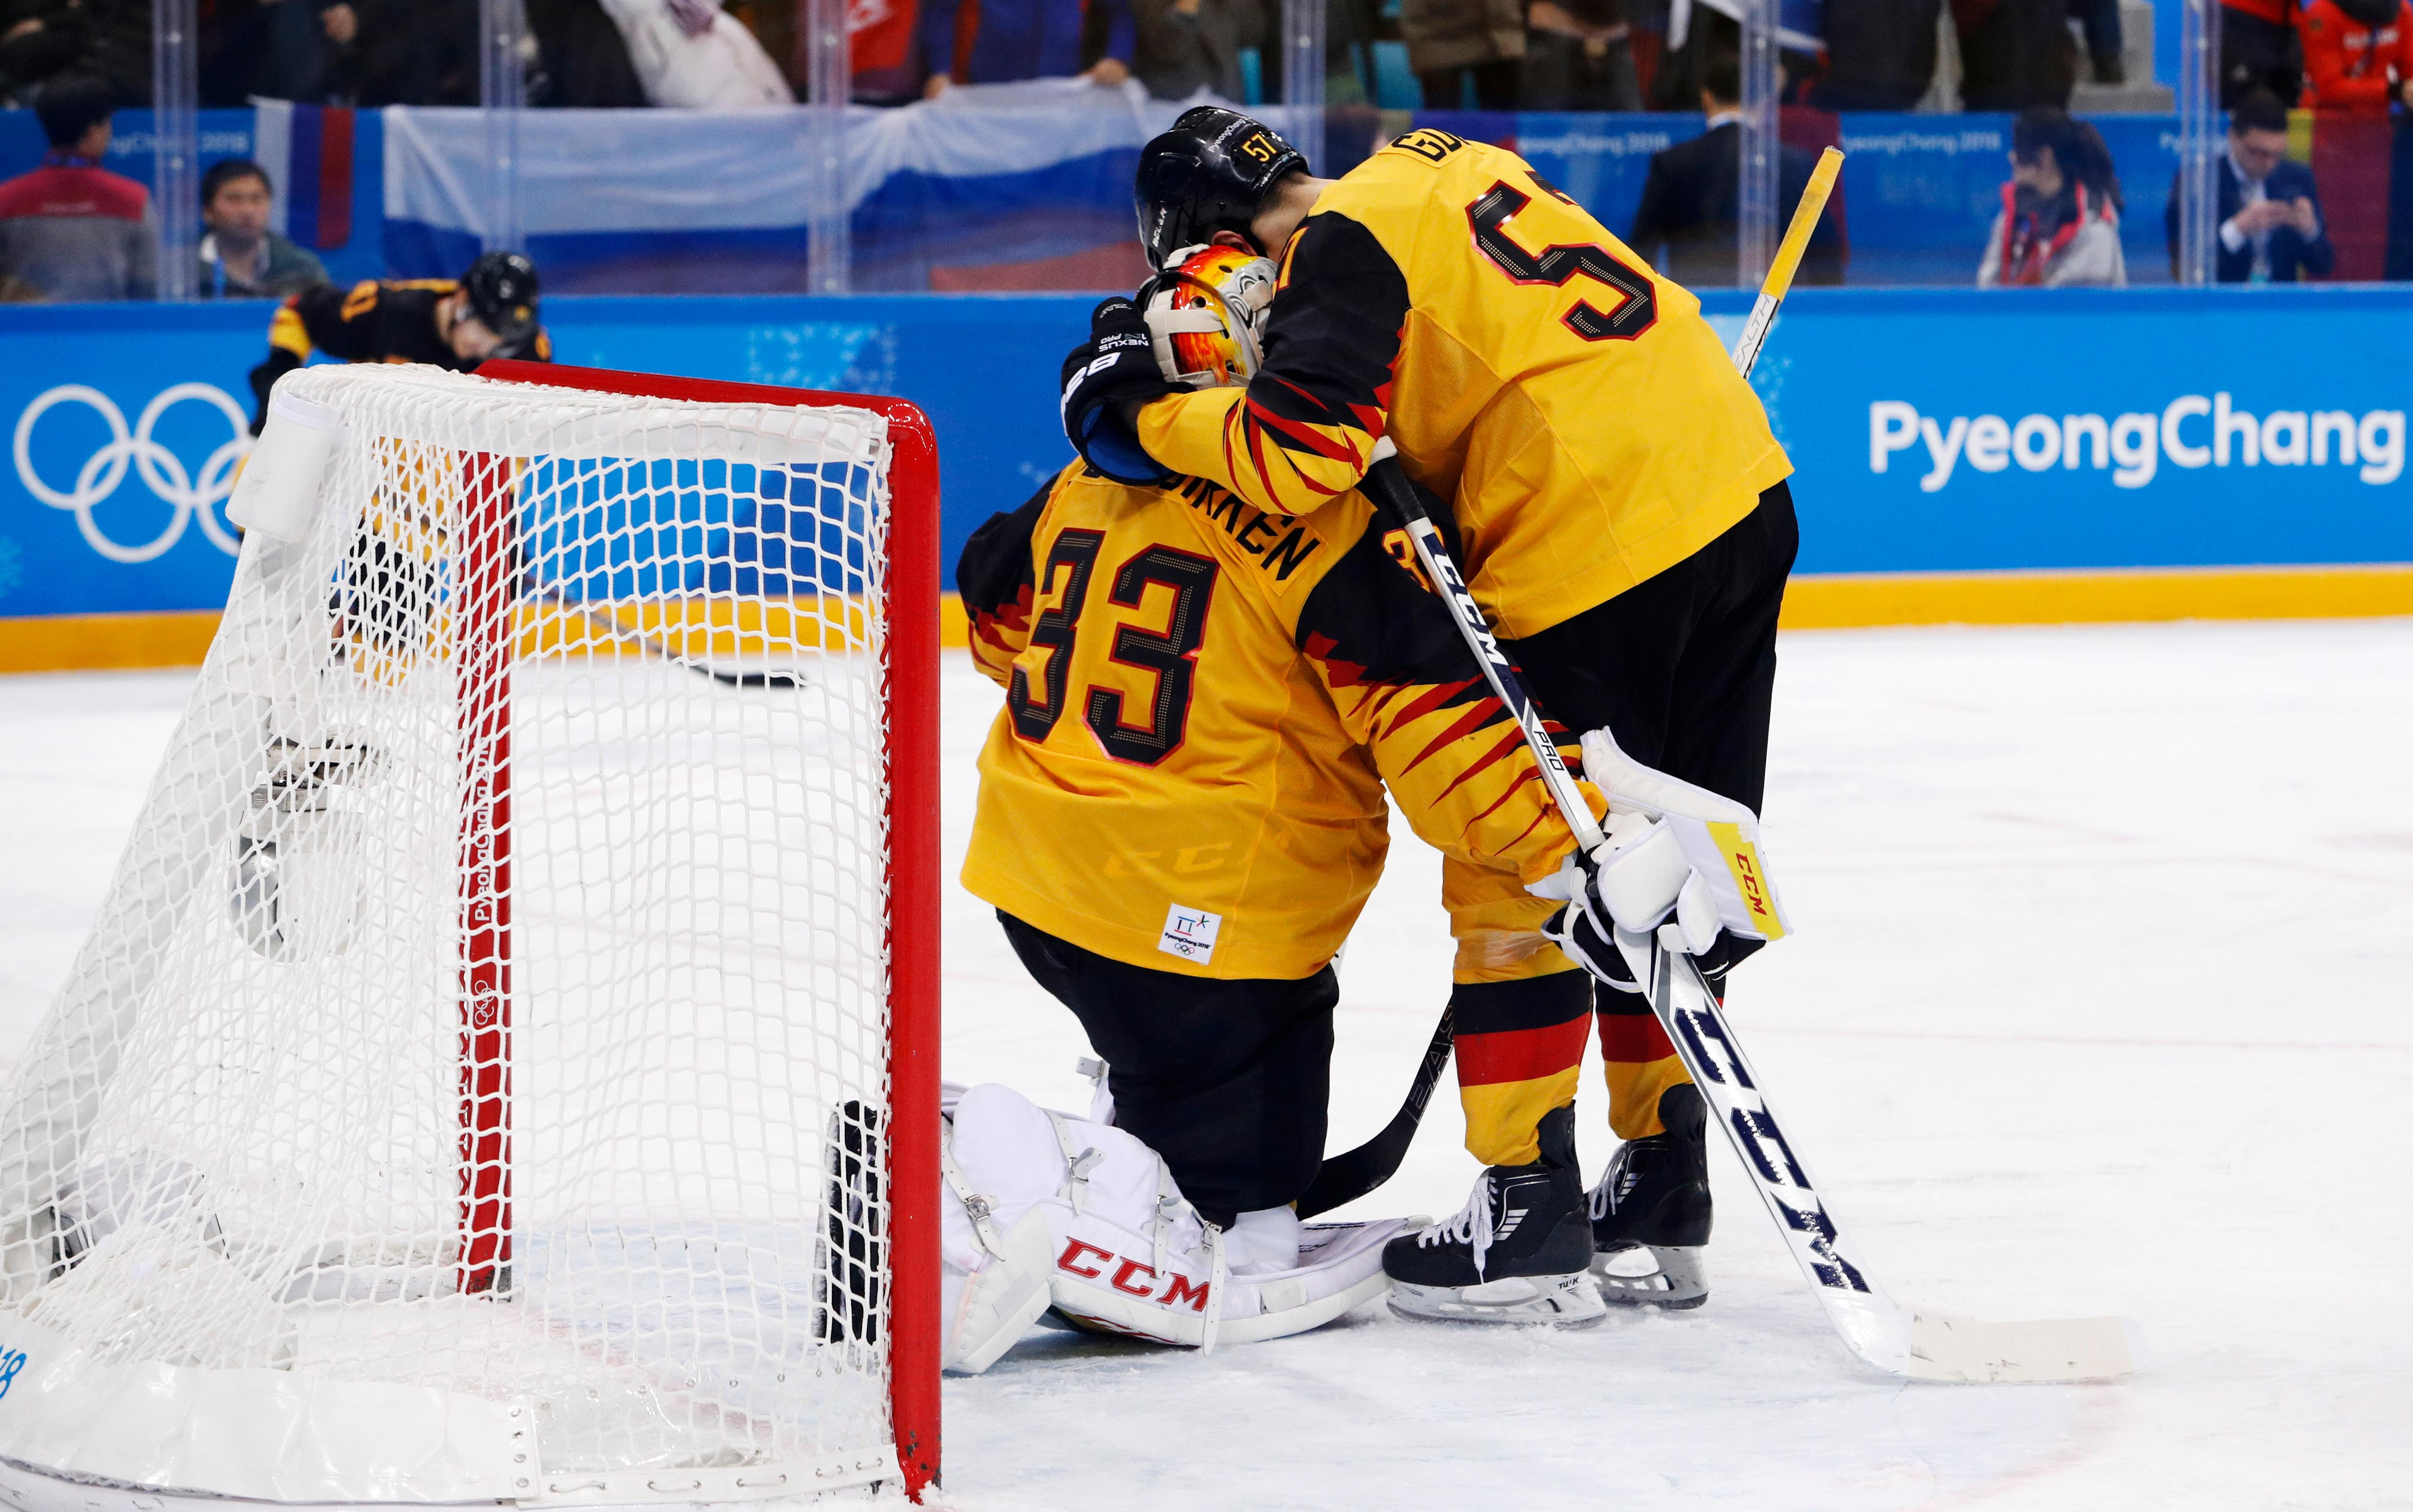 Marcel Goc (57), of Germany, and Danny aus den Birken (33) embrace after losing the men's gold medal hockey game against the Olympic athletes from Russia, 4-3, in overtime at the 2018 Winter Olympics, Sunday, Feb. 25, 2018, in Gangneung, South Korea. (AP Photo/John Locher)